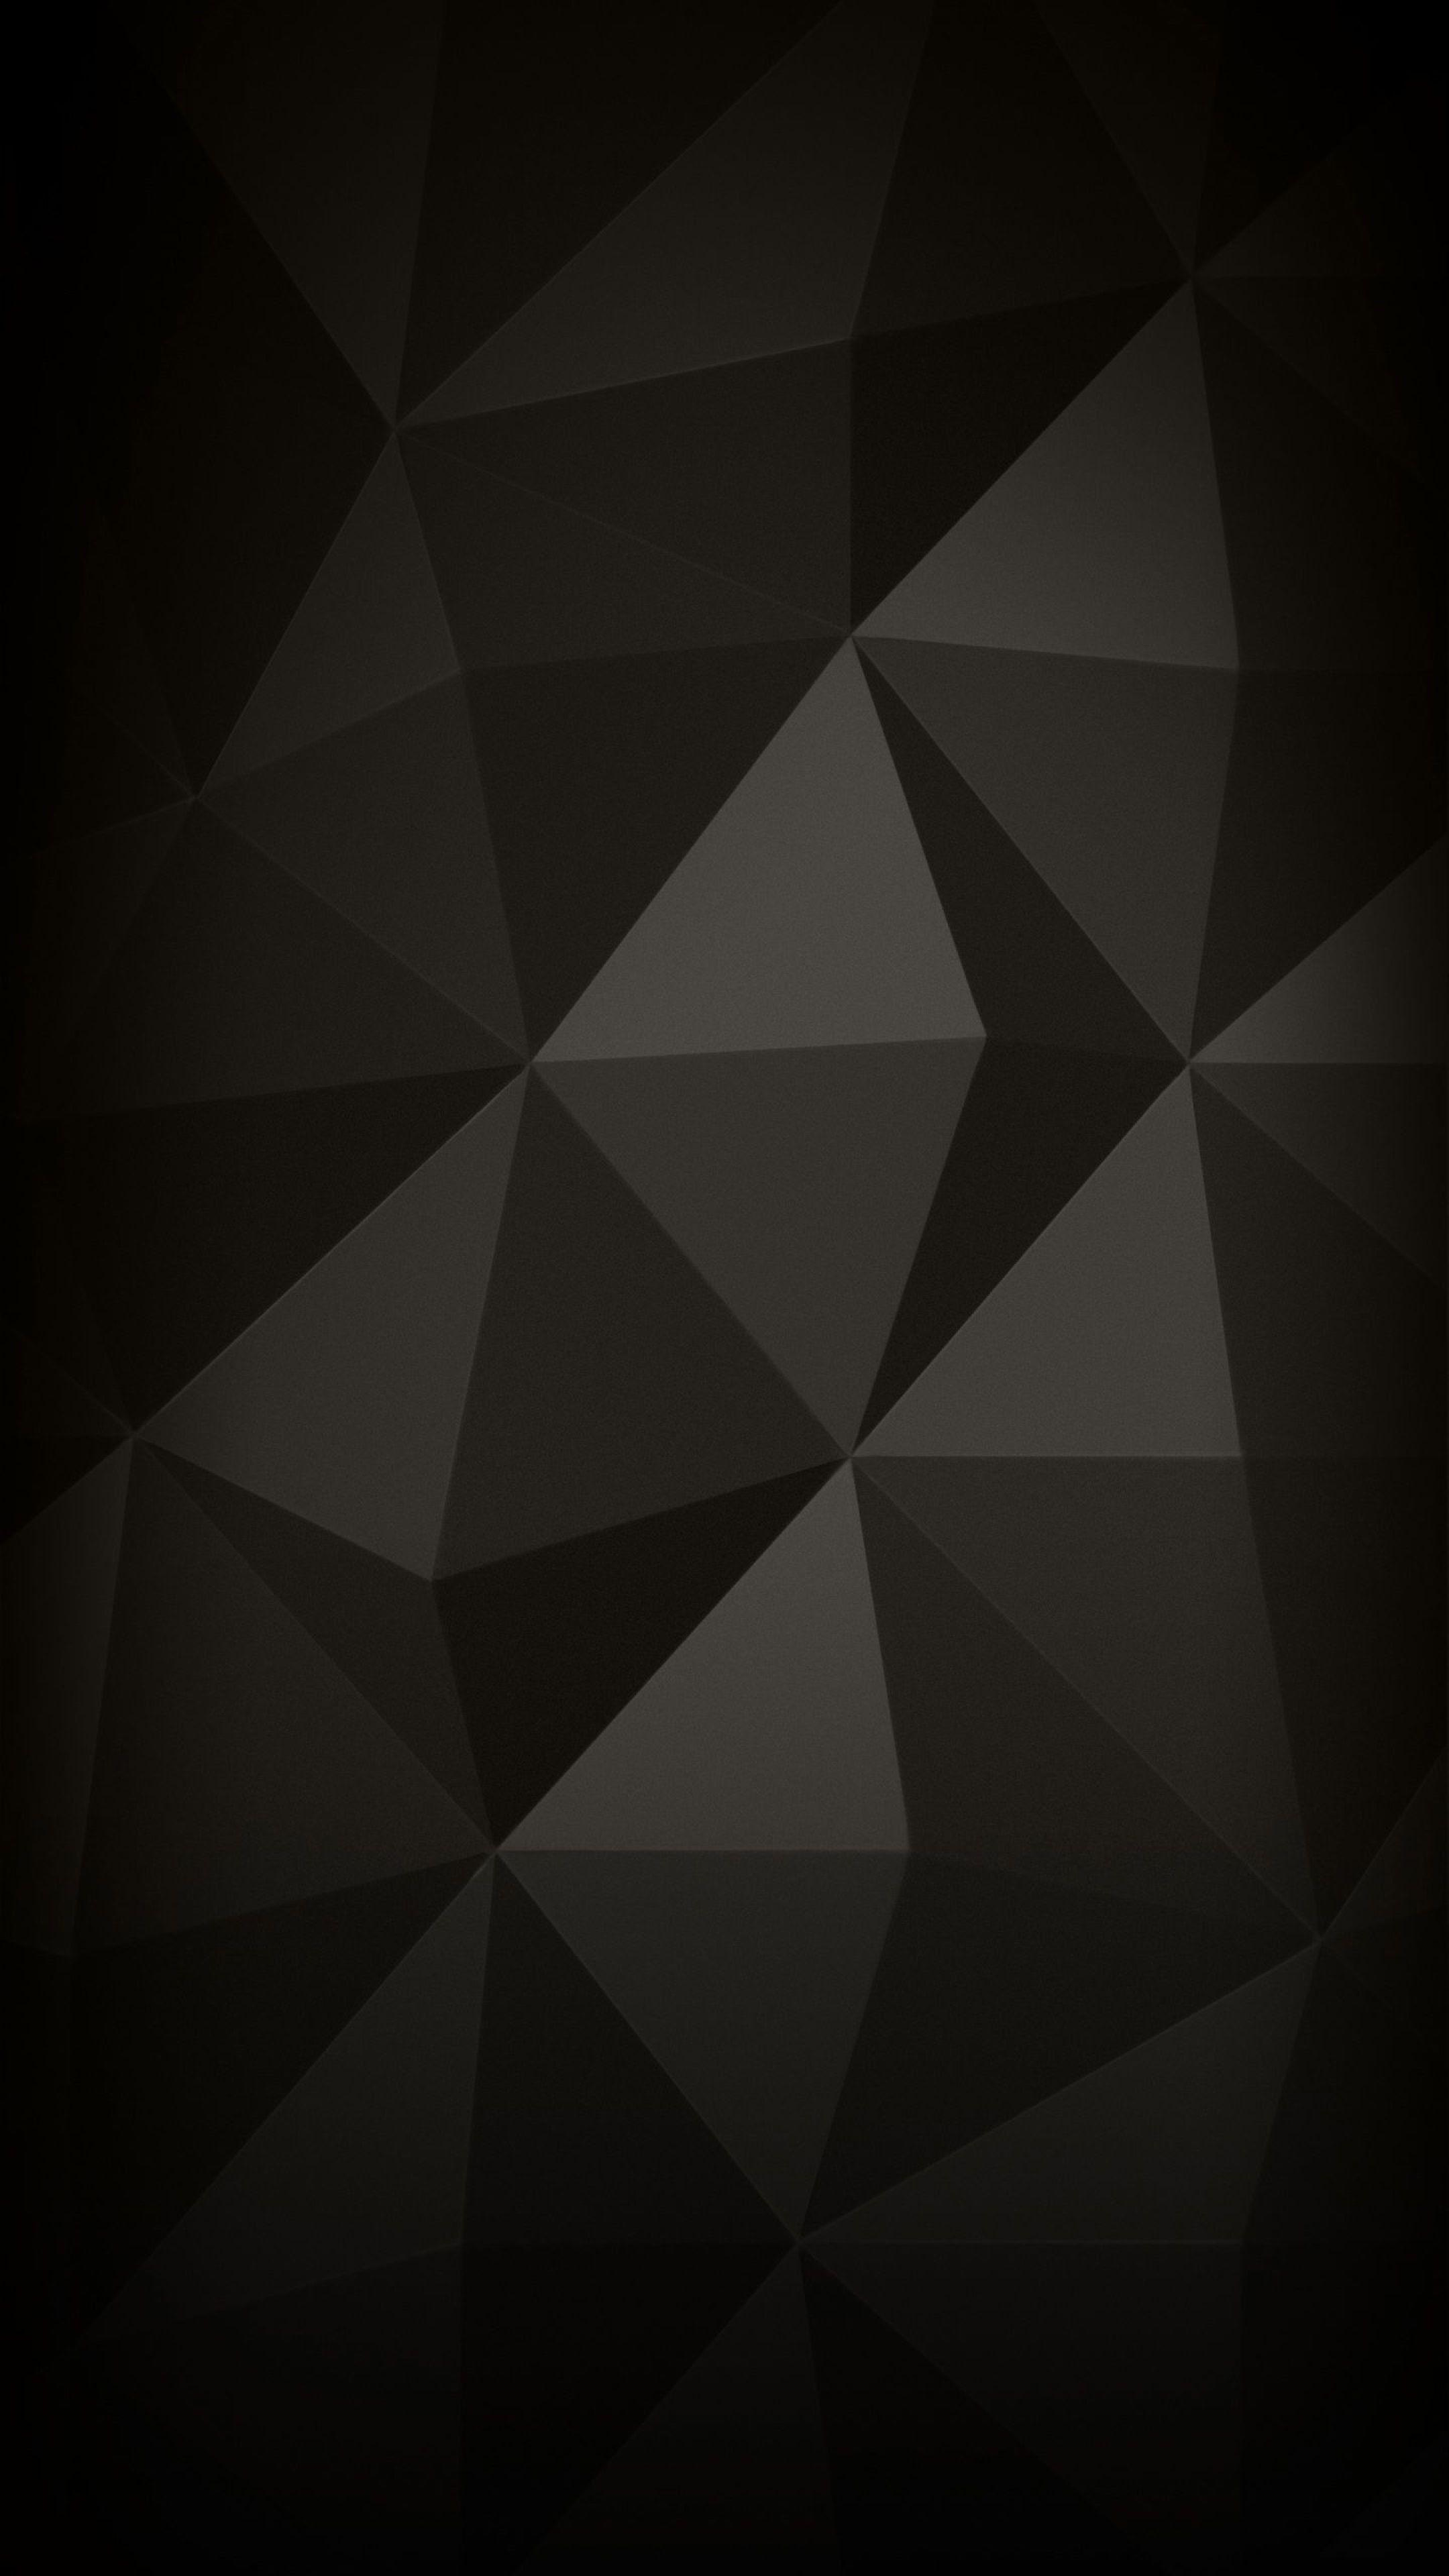 Ultra HD 4K black abstract mobile phone wallpapers 1 2160x3840